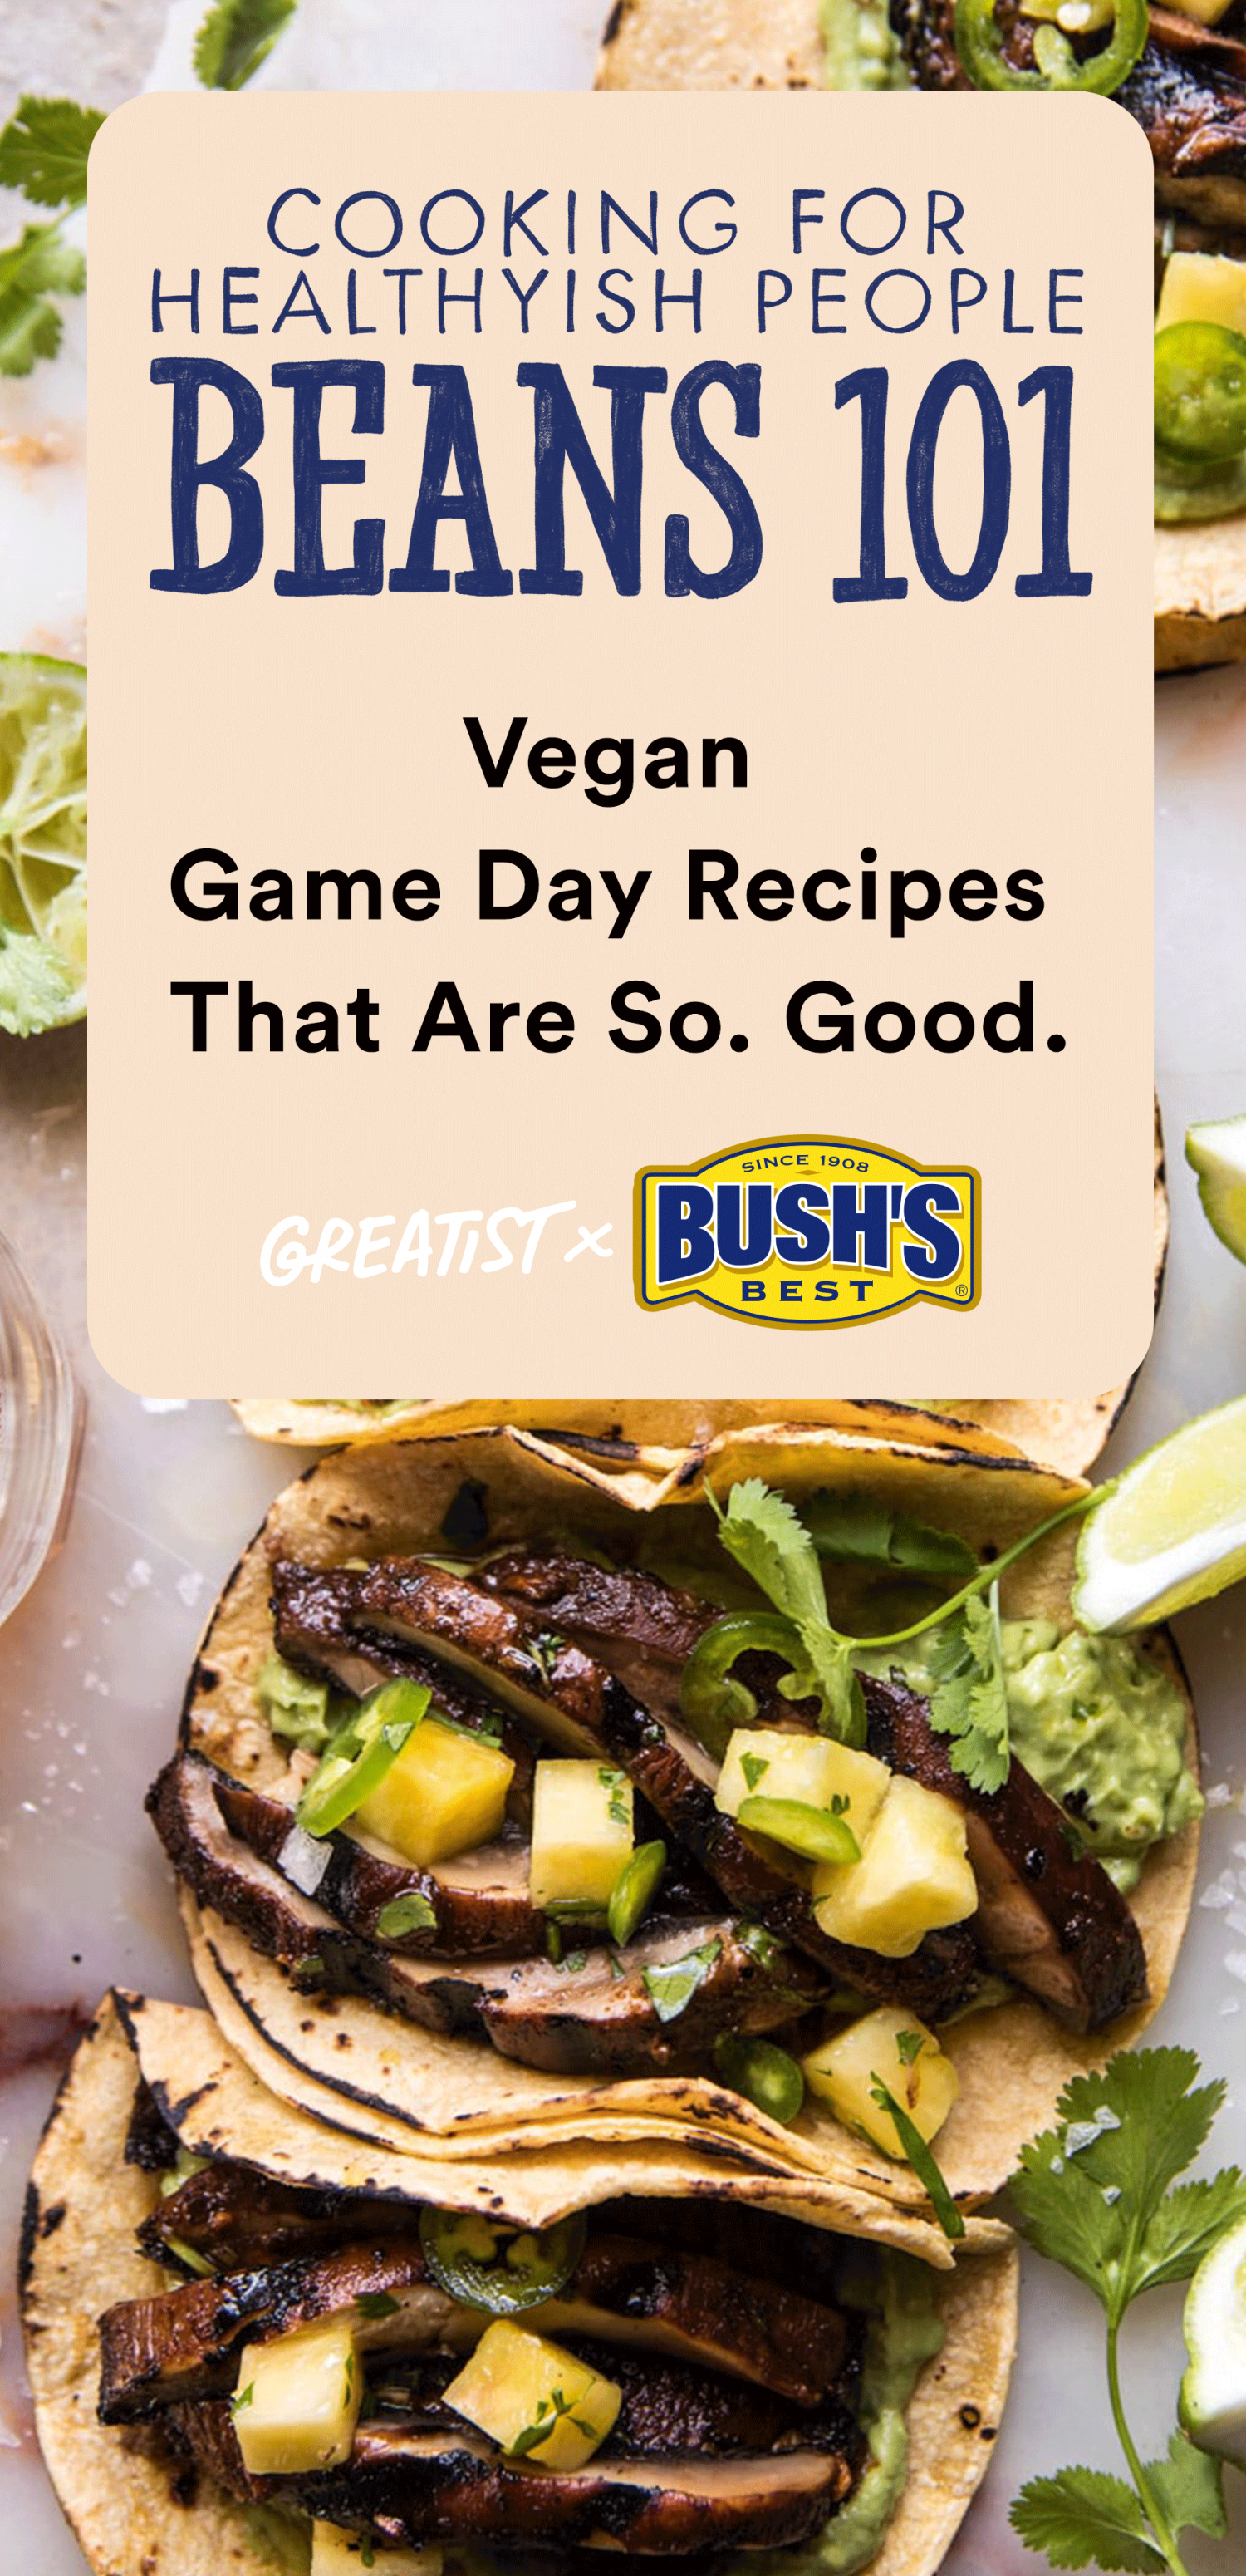 7 Vegan Game Day Recipes That Are So. Good. Game day